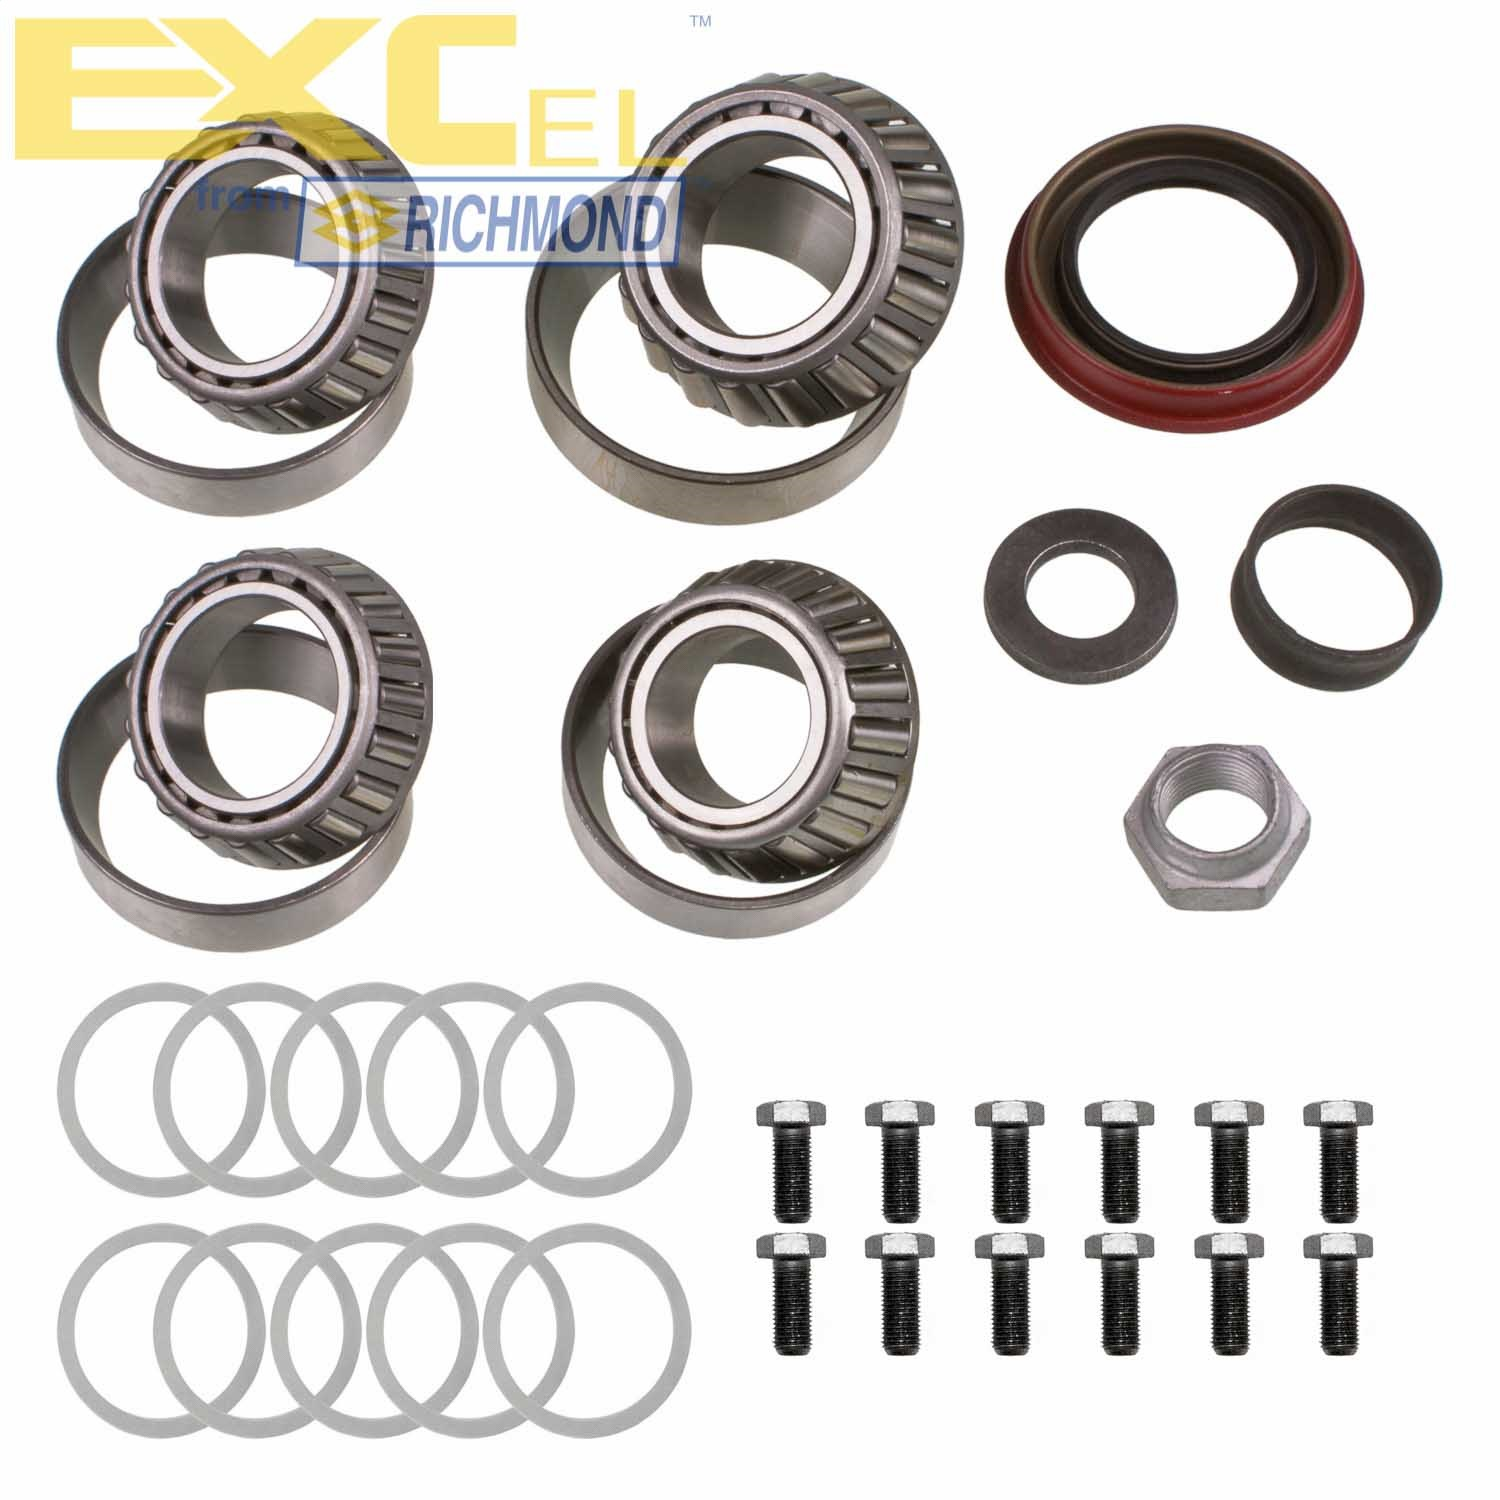 EXCEL from Richmond XL-1020-1 Full Differential Bearing Kit